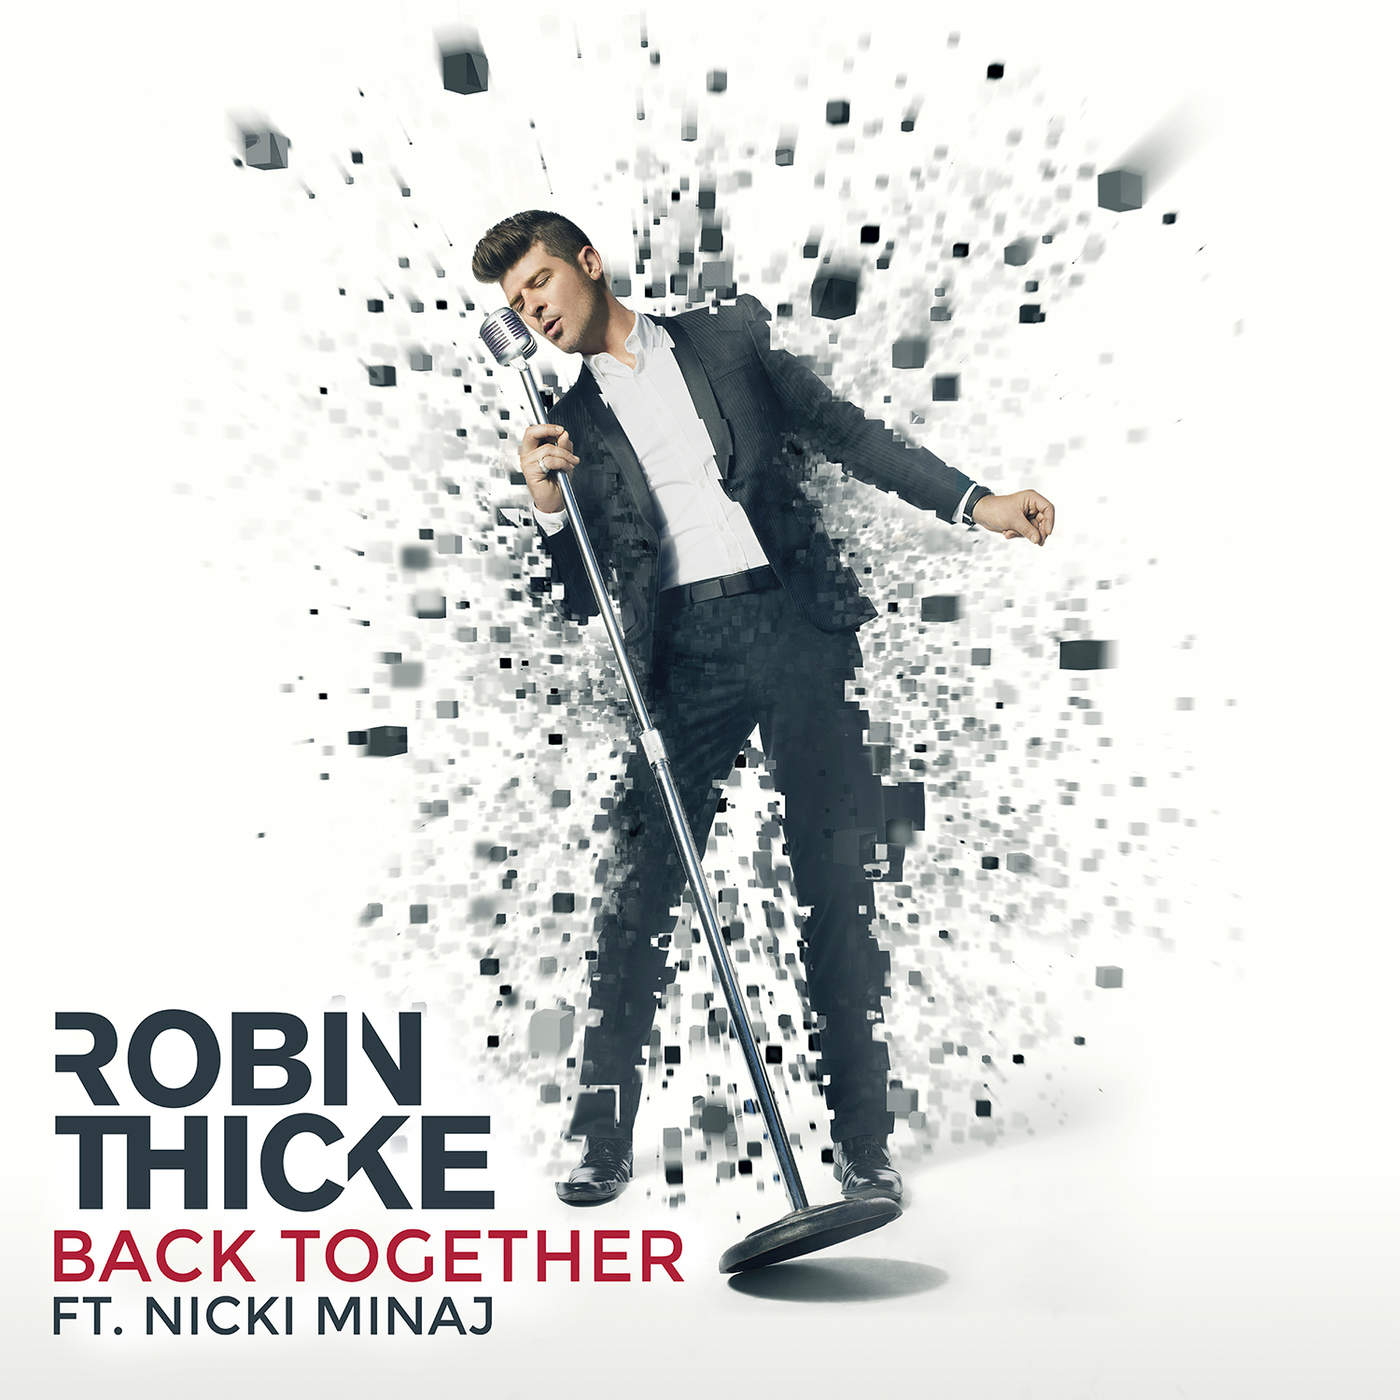 Robin Thicke – Back Together (Audio) ft. Nicki Minaj